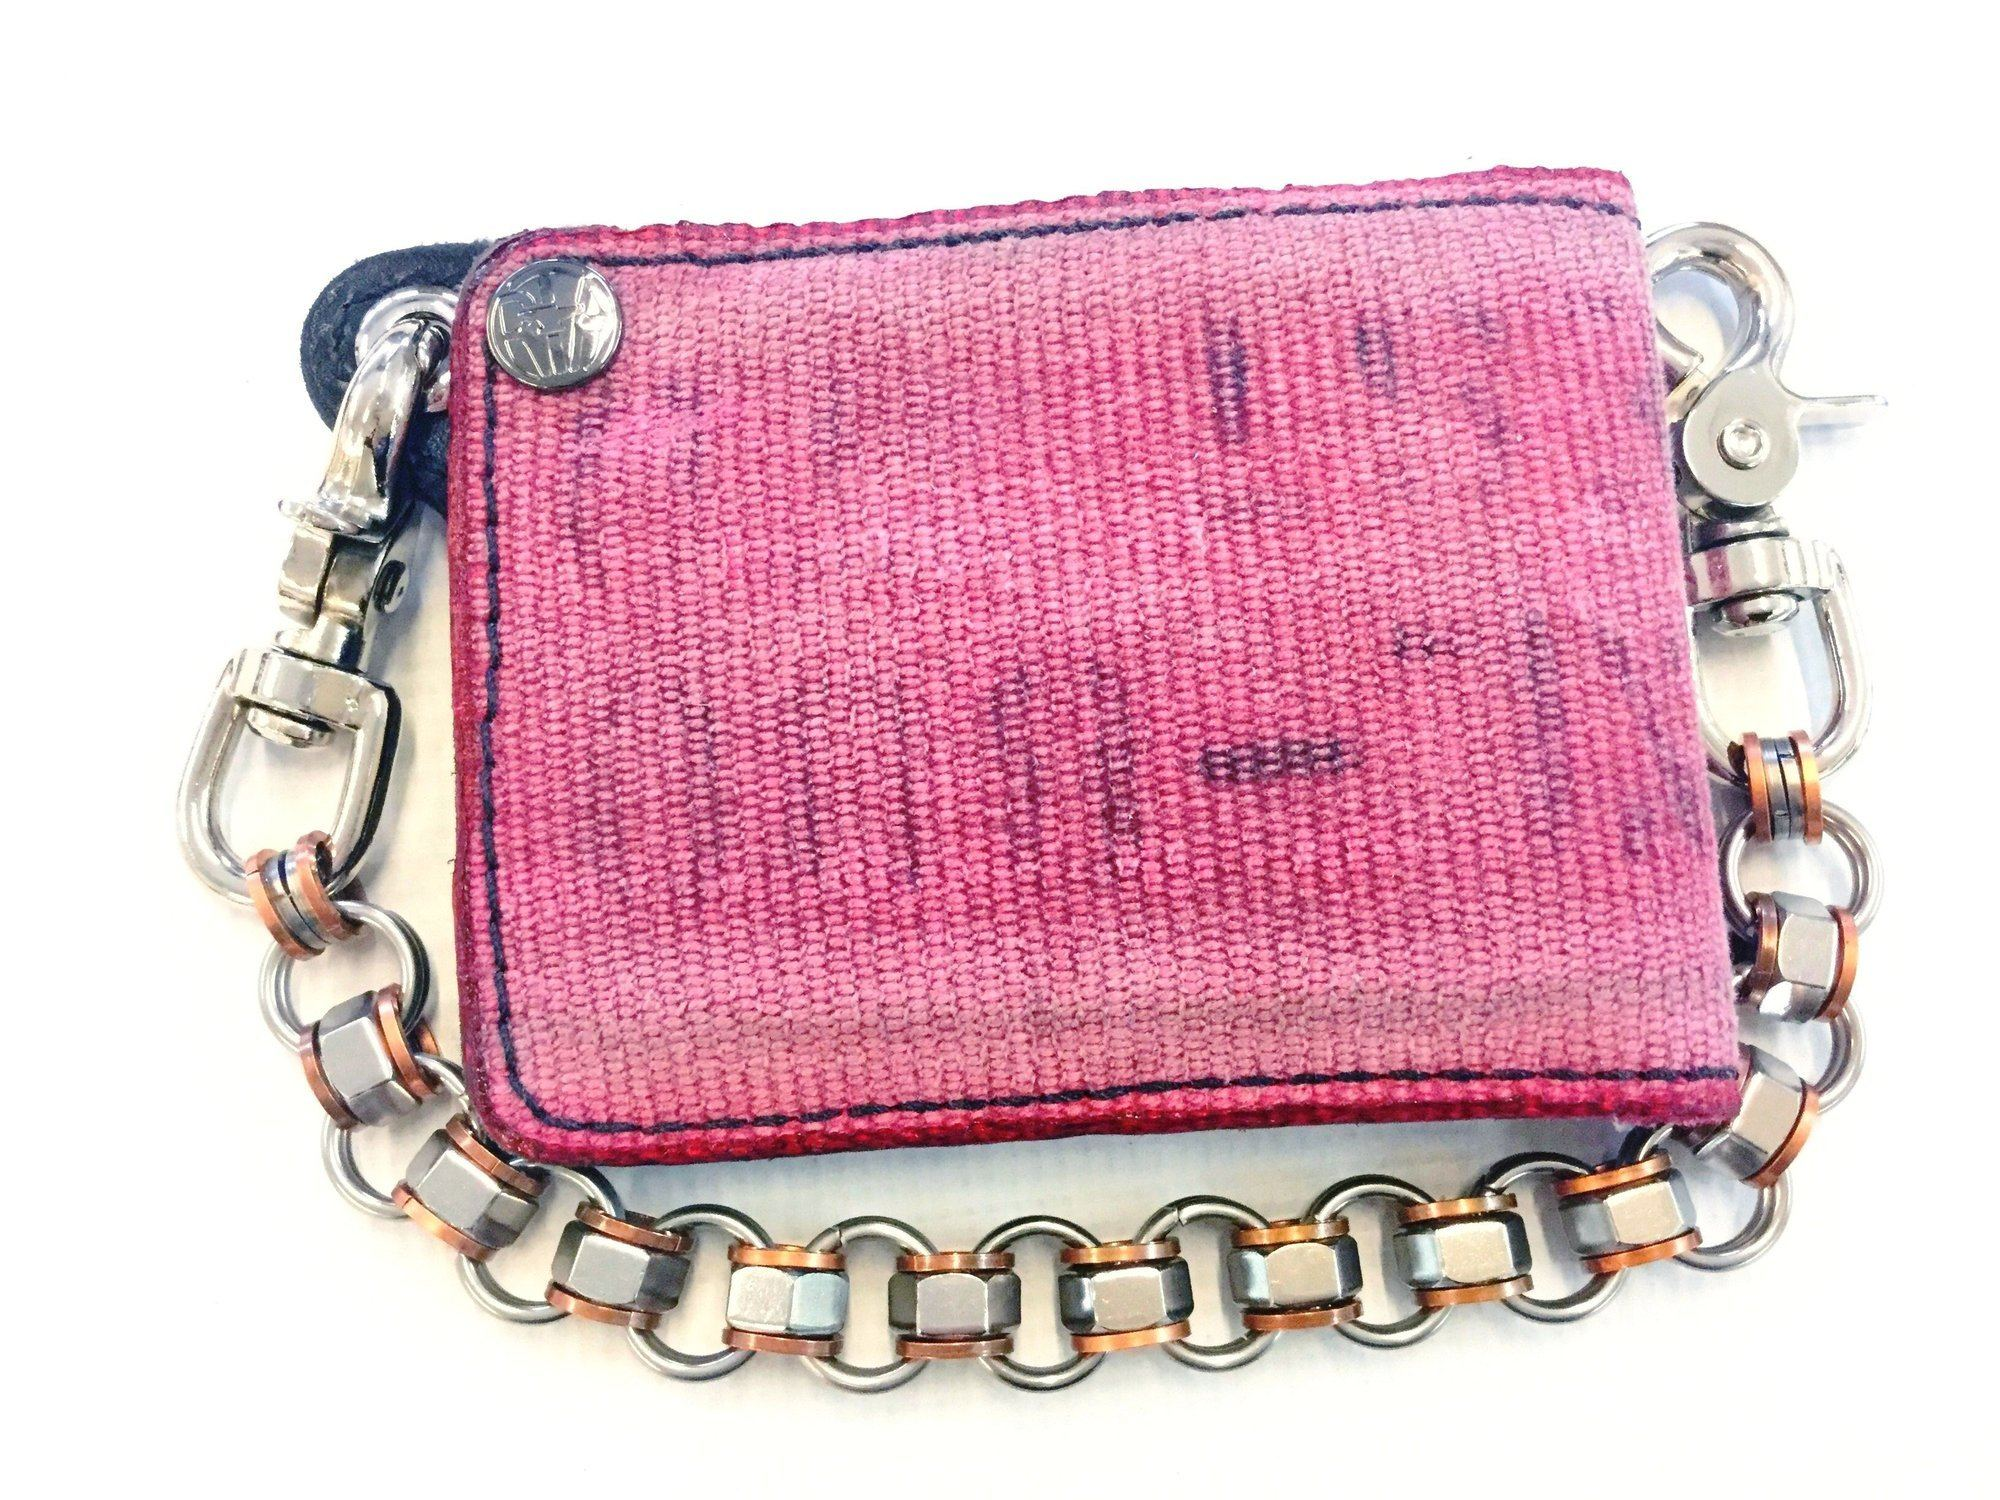 Fire Hose Wallet for the Firefighter